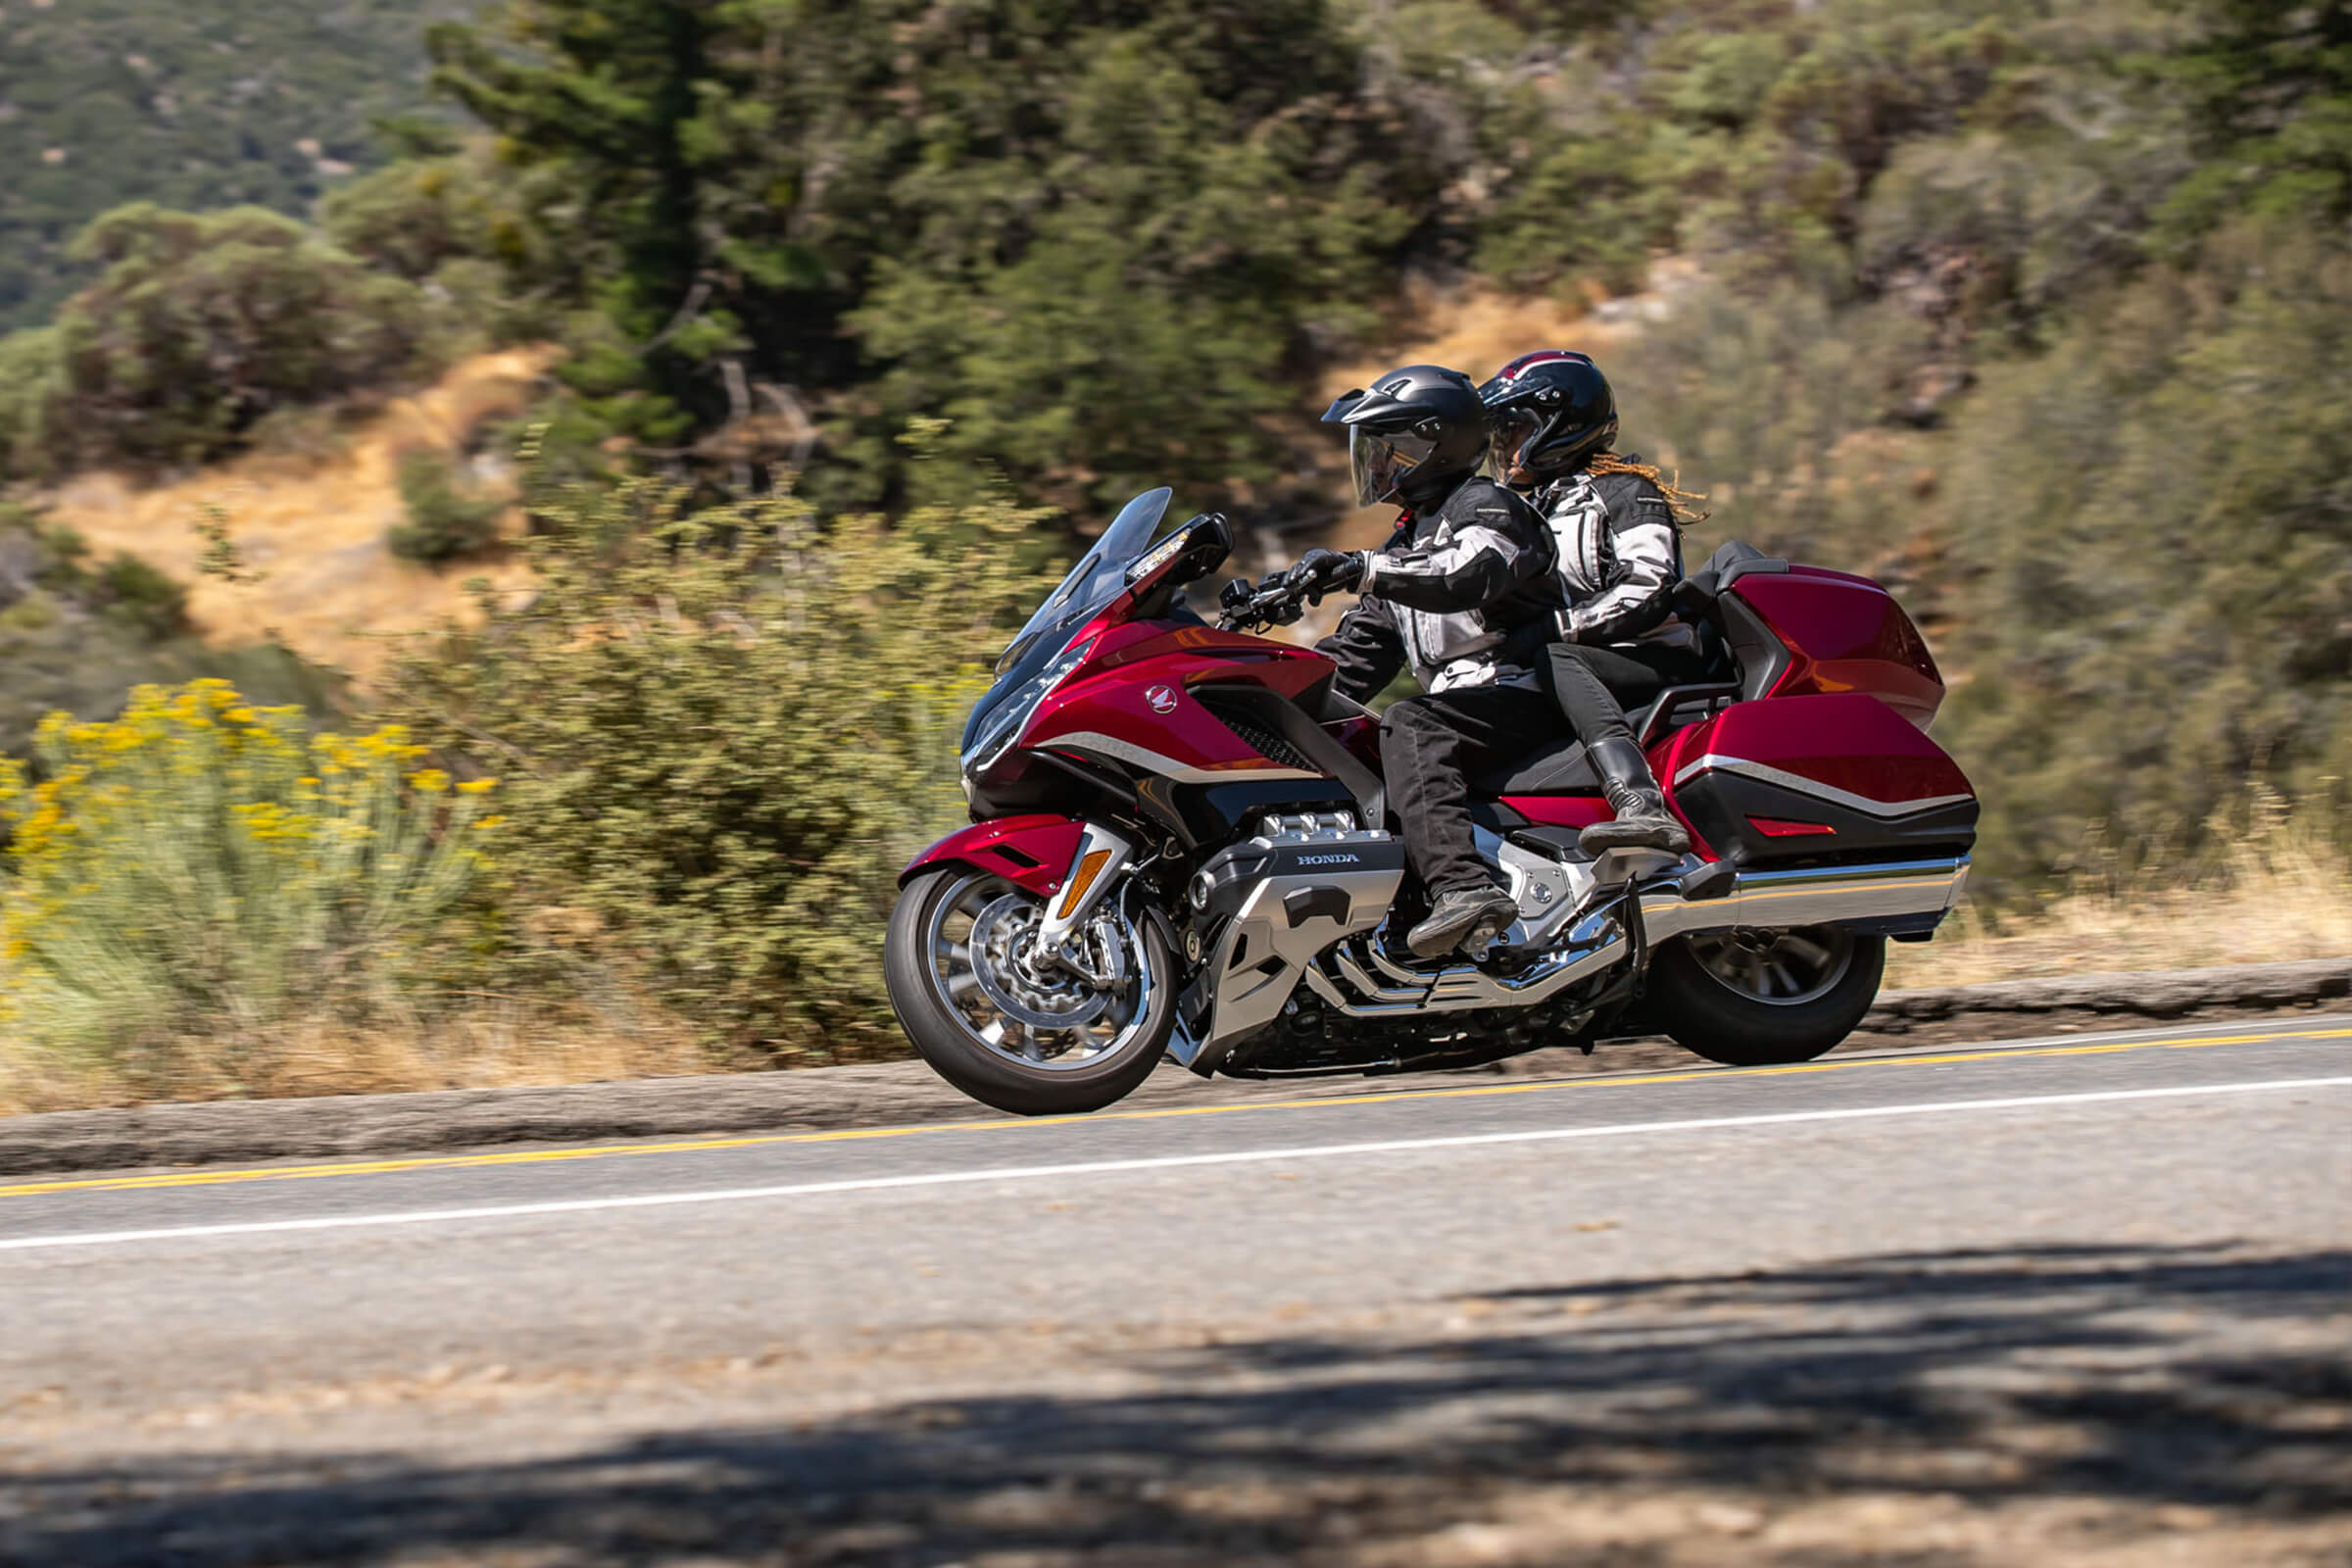 2021 Honda Gold Wing Gold Wing Tour Specs Features Photos Wbw